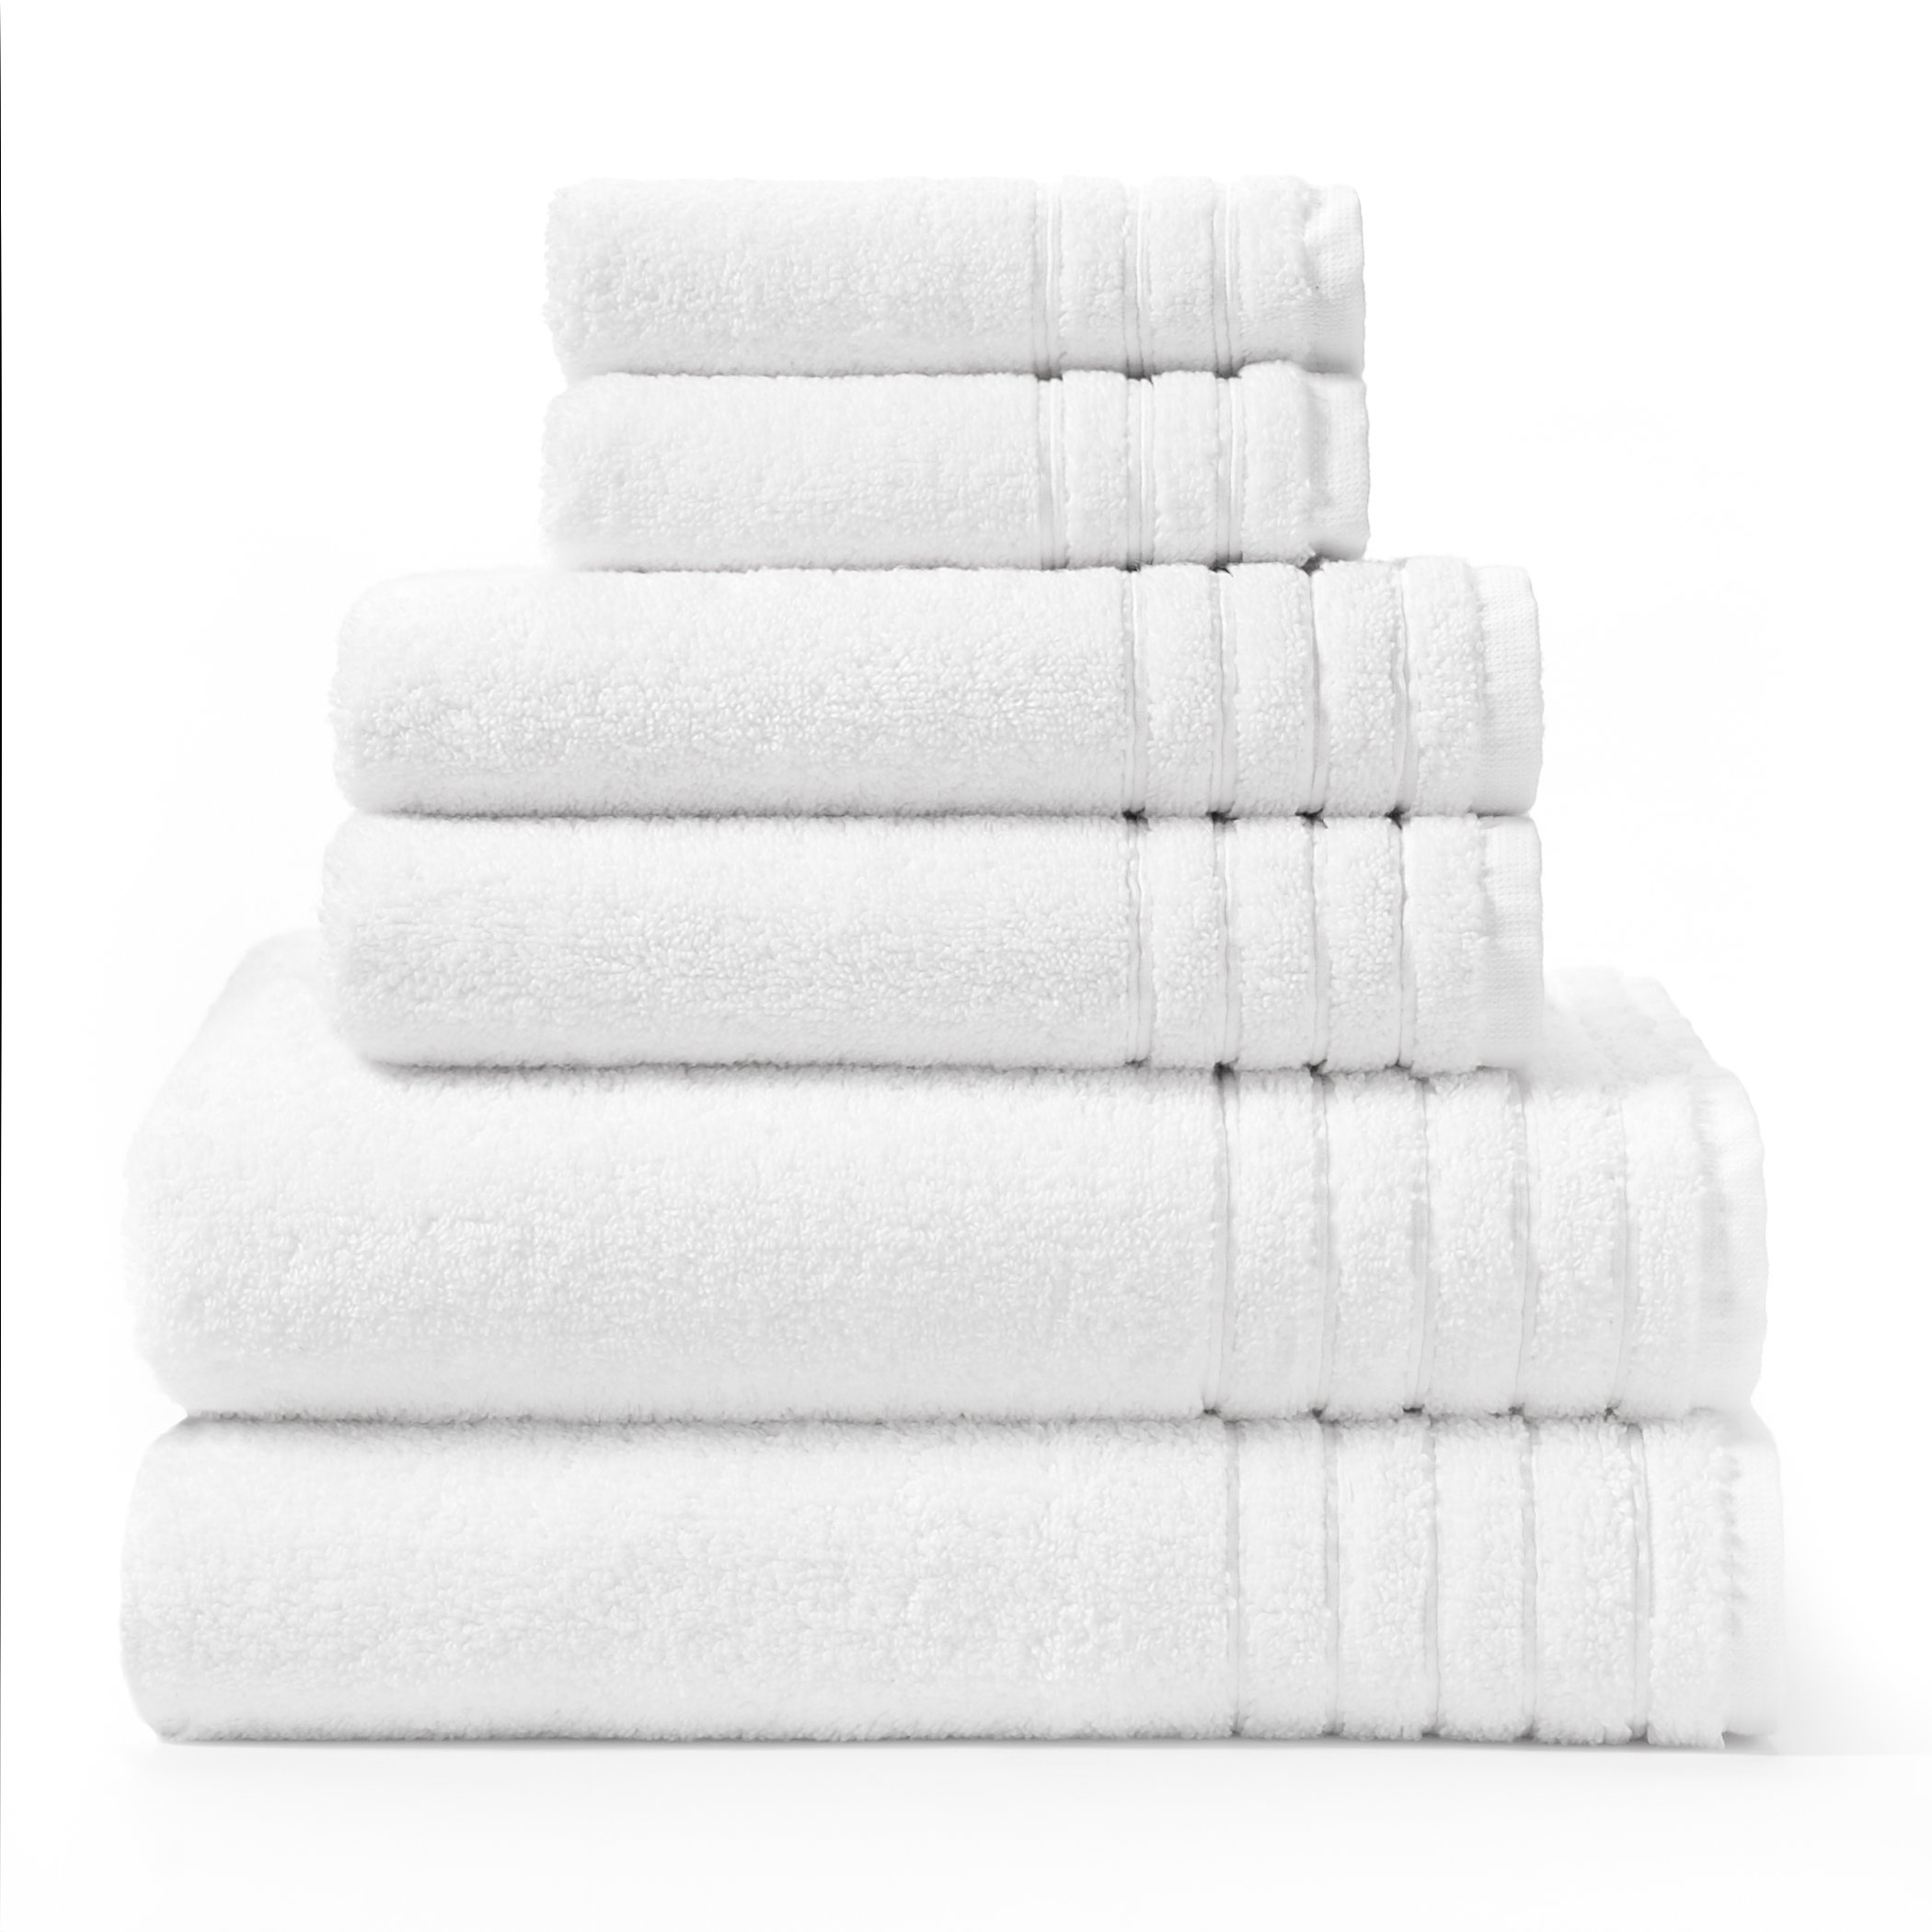 Cotton Craft - Super Zero Twist 6 Pack Towel Set - White - 7 Star Hotel Collection Beyond Luxury Softer Than A Cloud - Contains 2 Oversized Bath Towels 30x54, 2 Hand Towels 16x30, 2 Wash Cloths 13x13